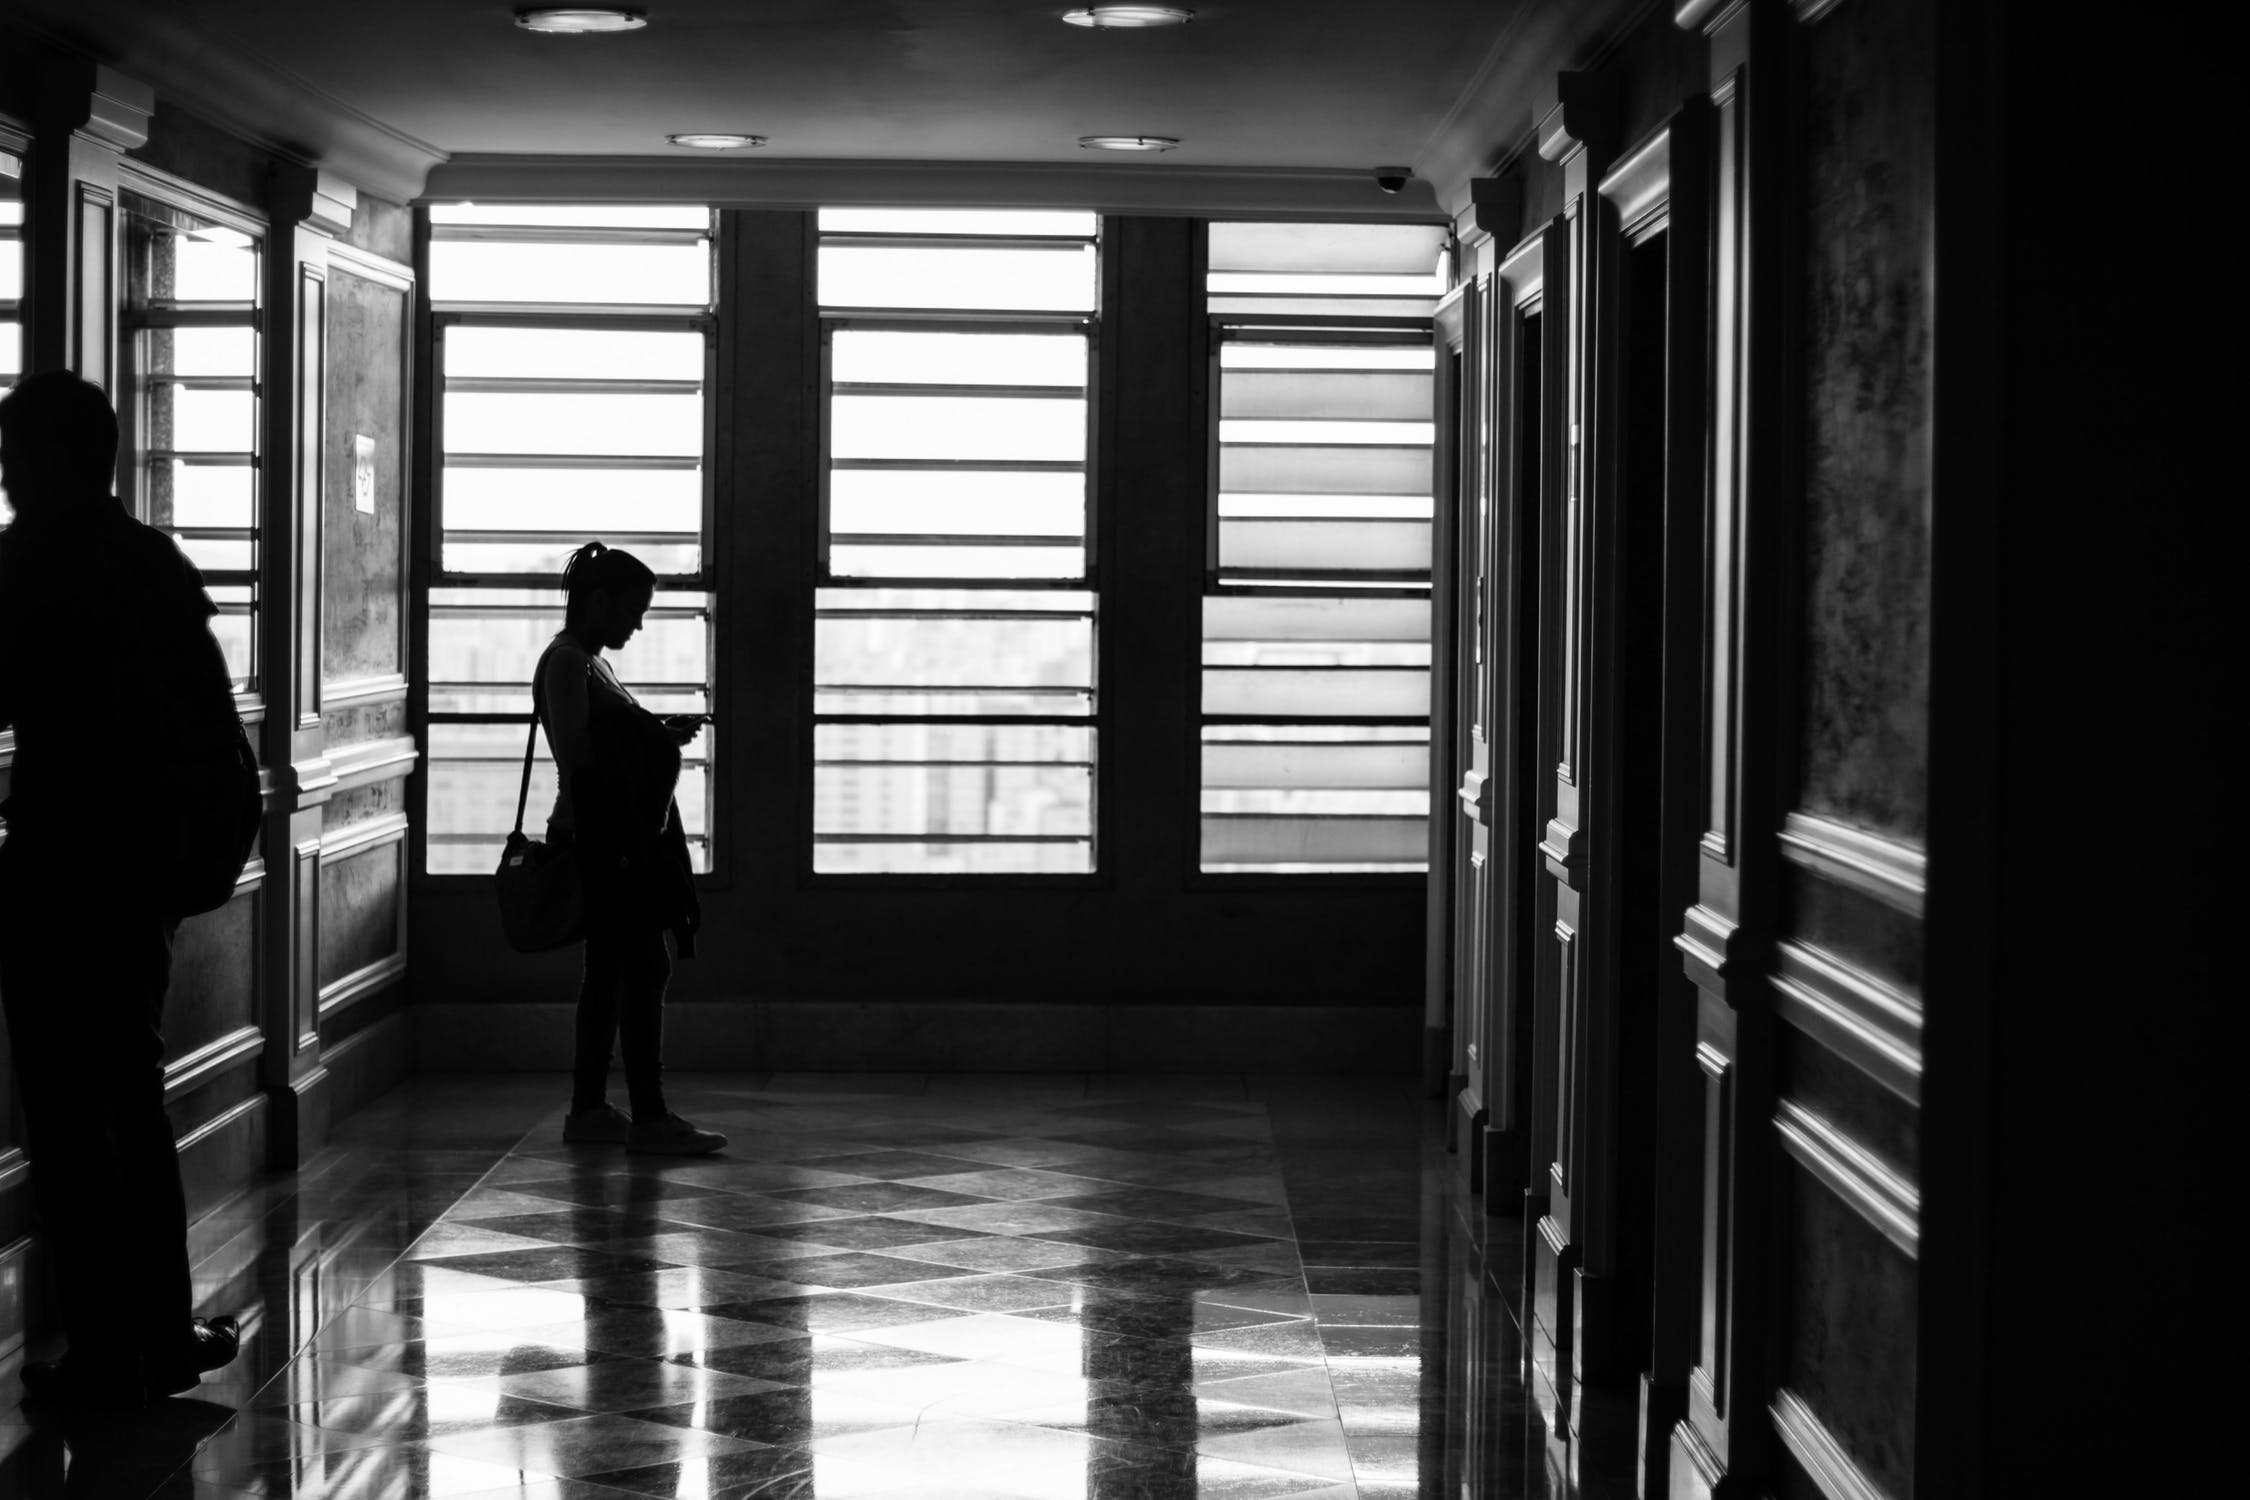 woman waits in elevator lobby to enter in elevator lift